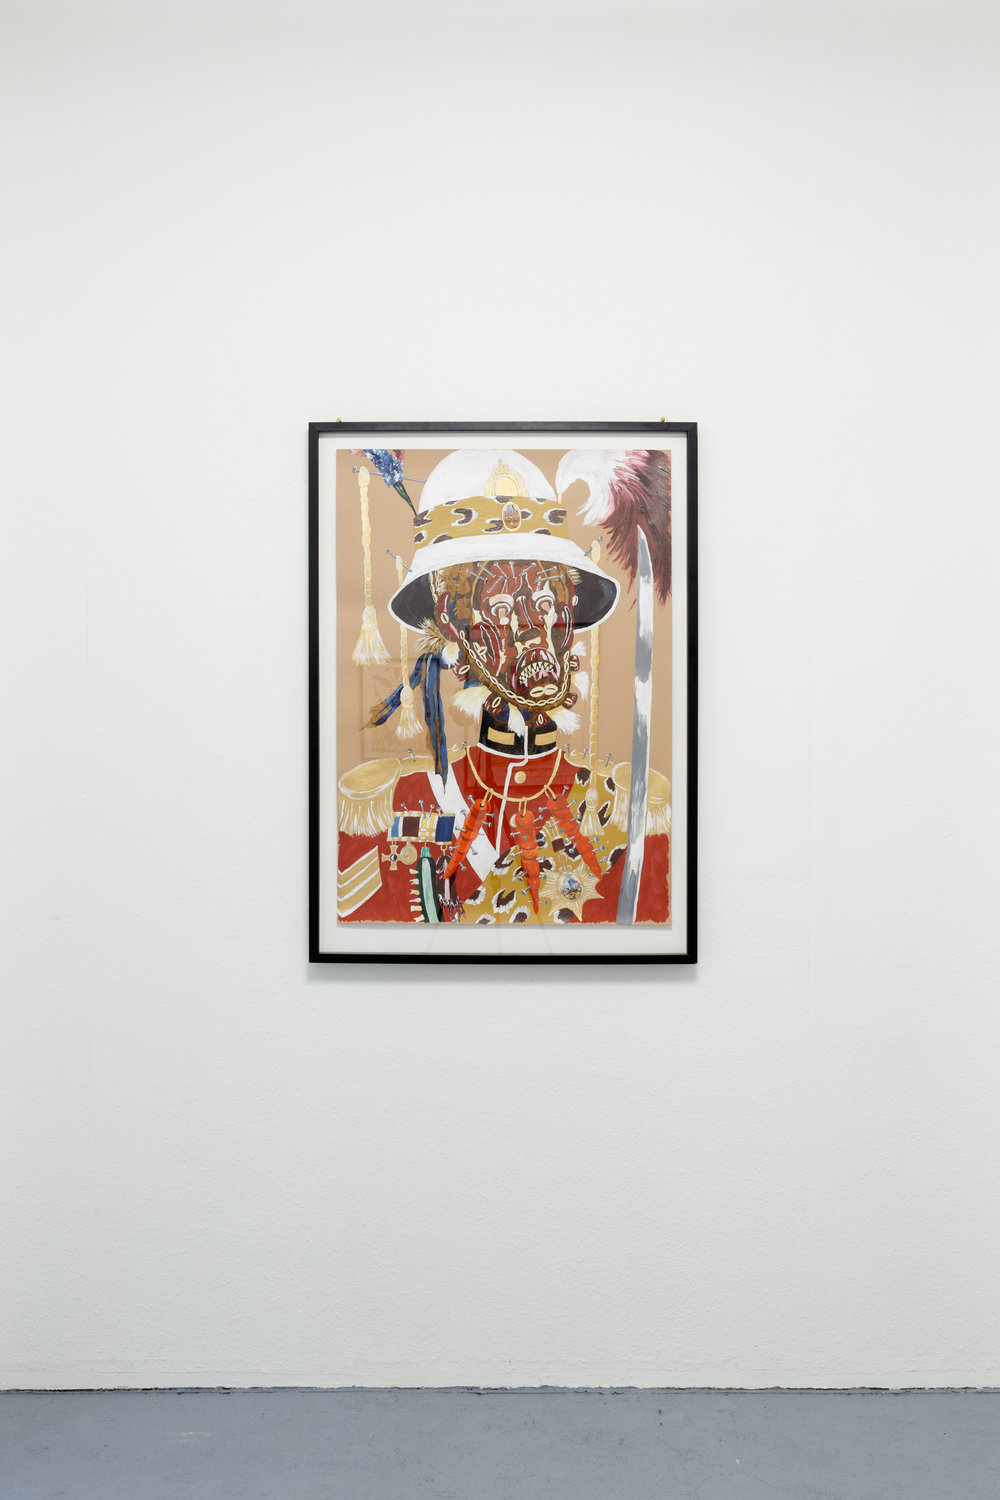 Andrew Gilbert,´ Hauka Fetish of Colonial Governor  ´ , 2014, acrylic, watercolor and fineliner on paper, 100 x 70 cm Photo: Kilian Bannwart